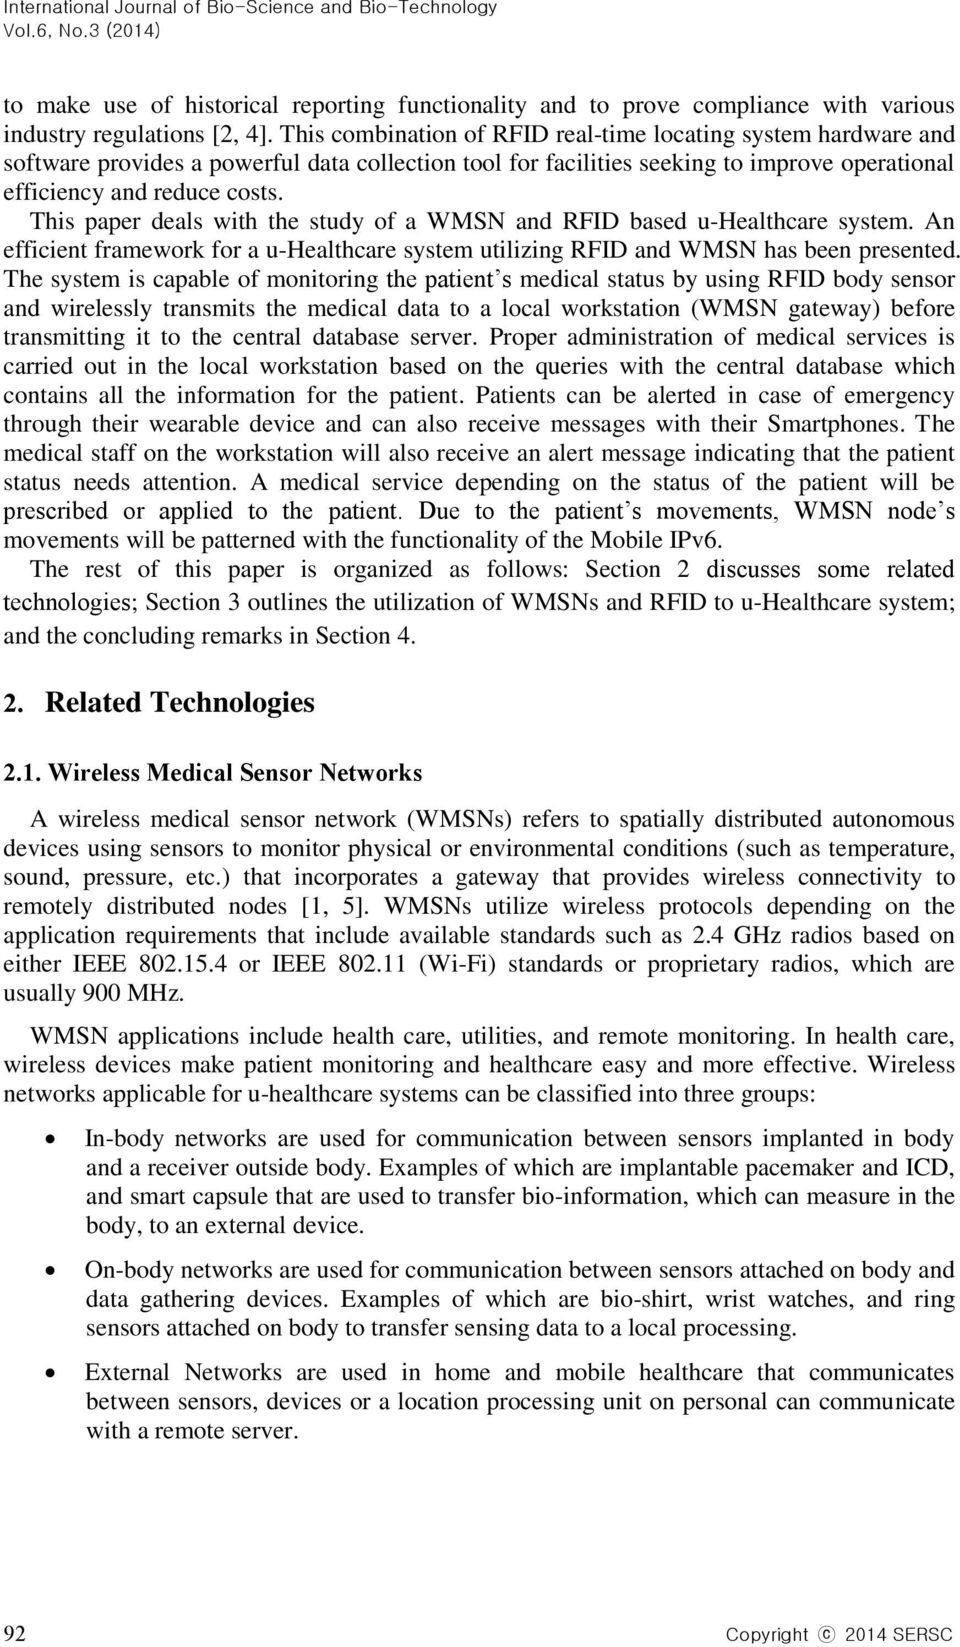 This paper deals with the study of a WMSN and RFID based u-healthcare system. An efficient framework for a u-healthcare system utilizing RFID and WMSN has been presented.